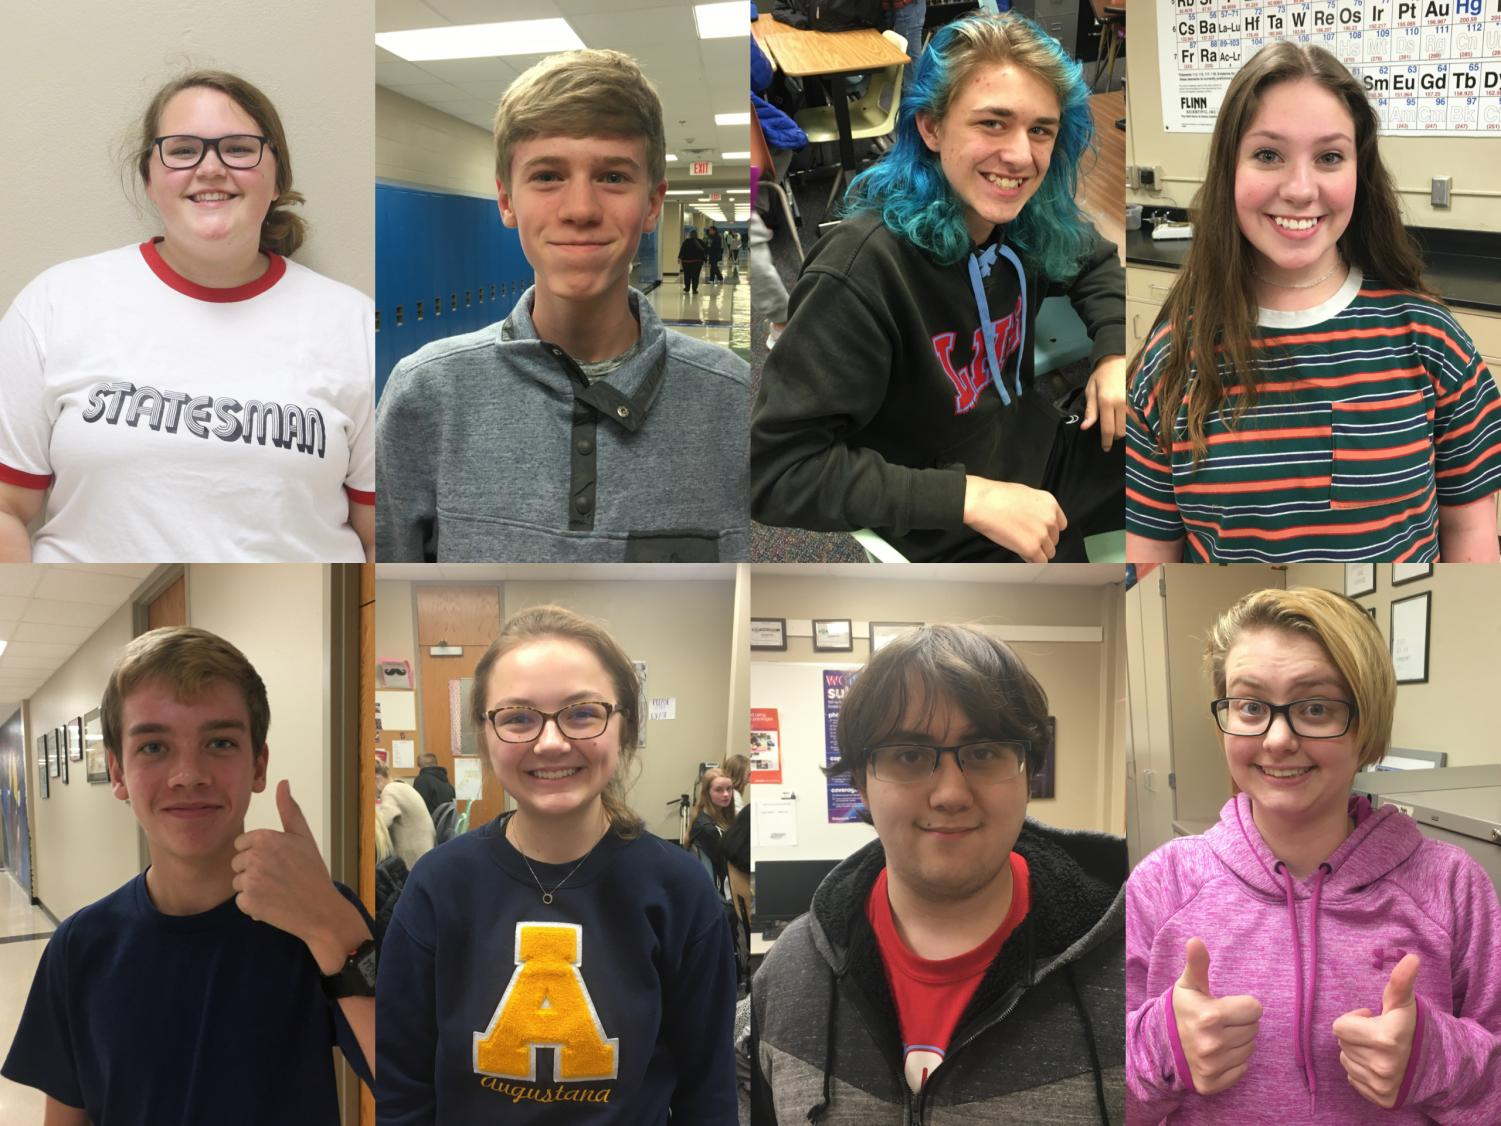 The LHS Nov. 2019 Students of the Month pose for pictures.